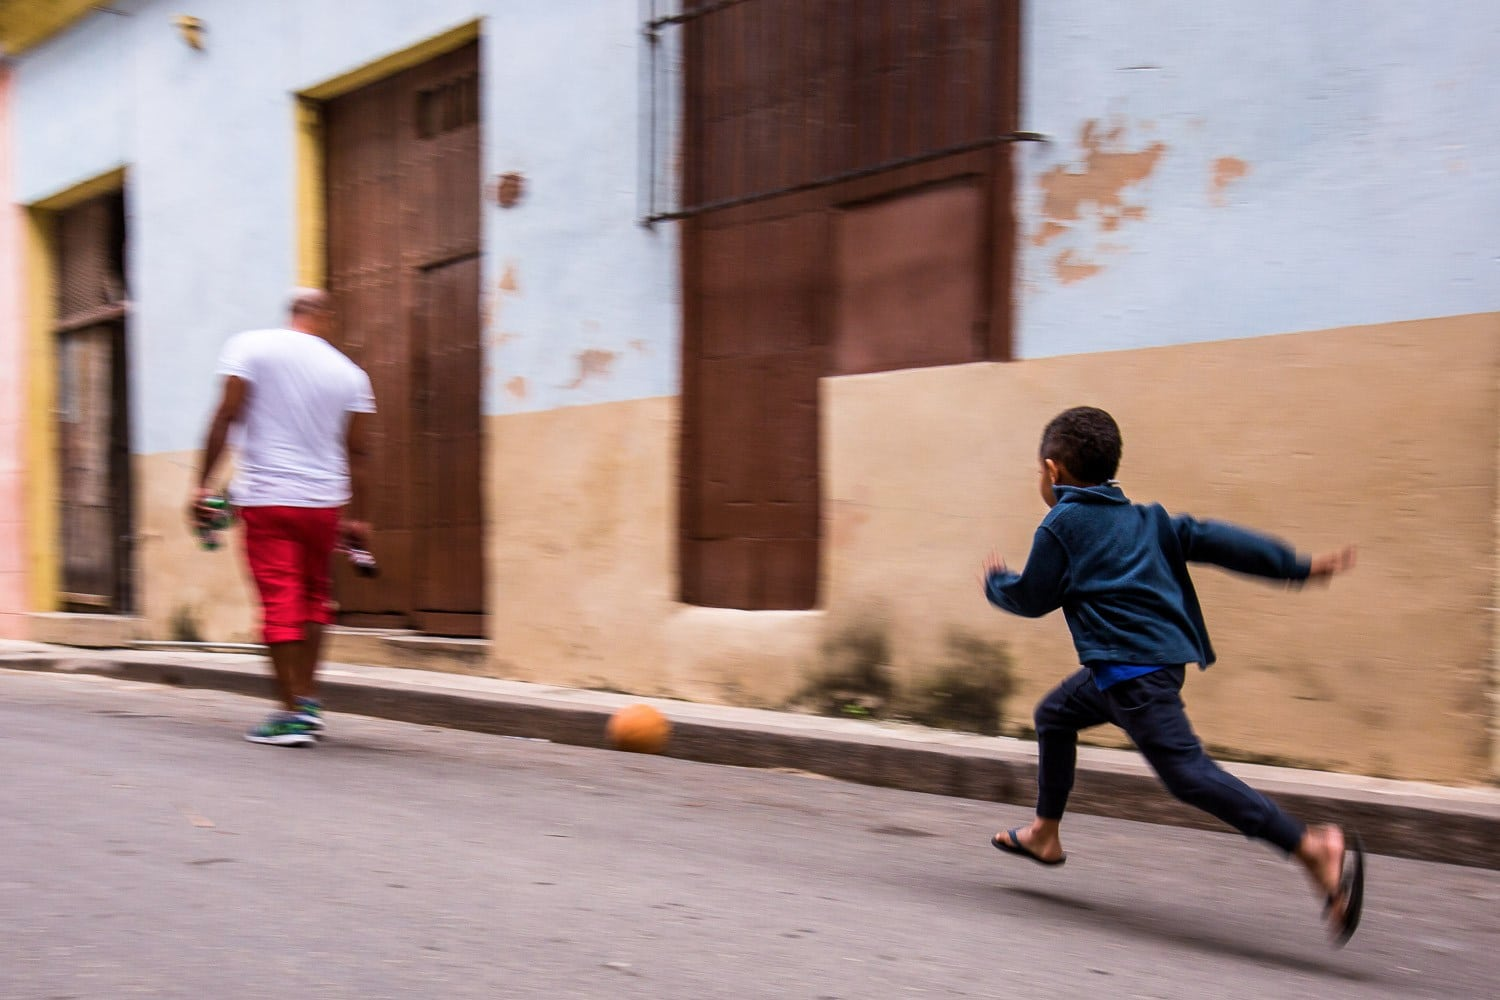 Child kicking a ball in Old Havana, Cuba